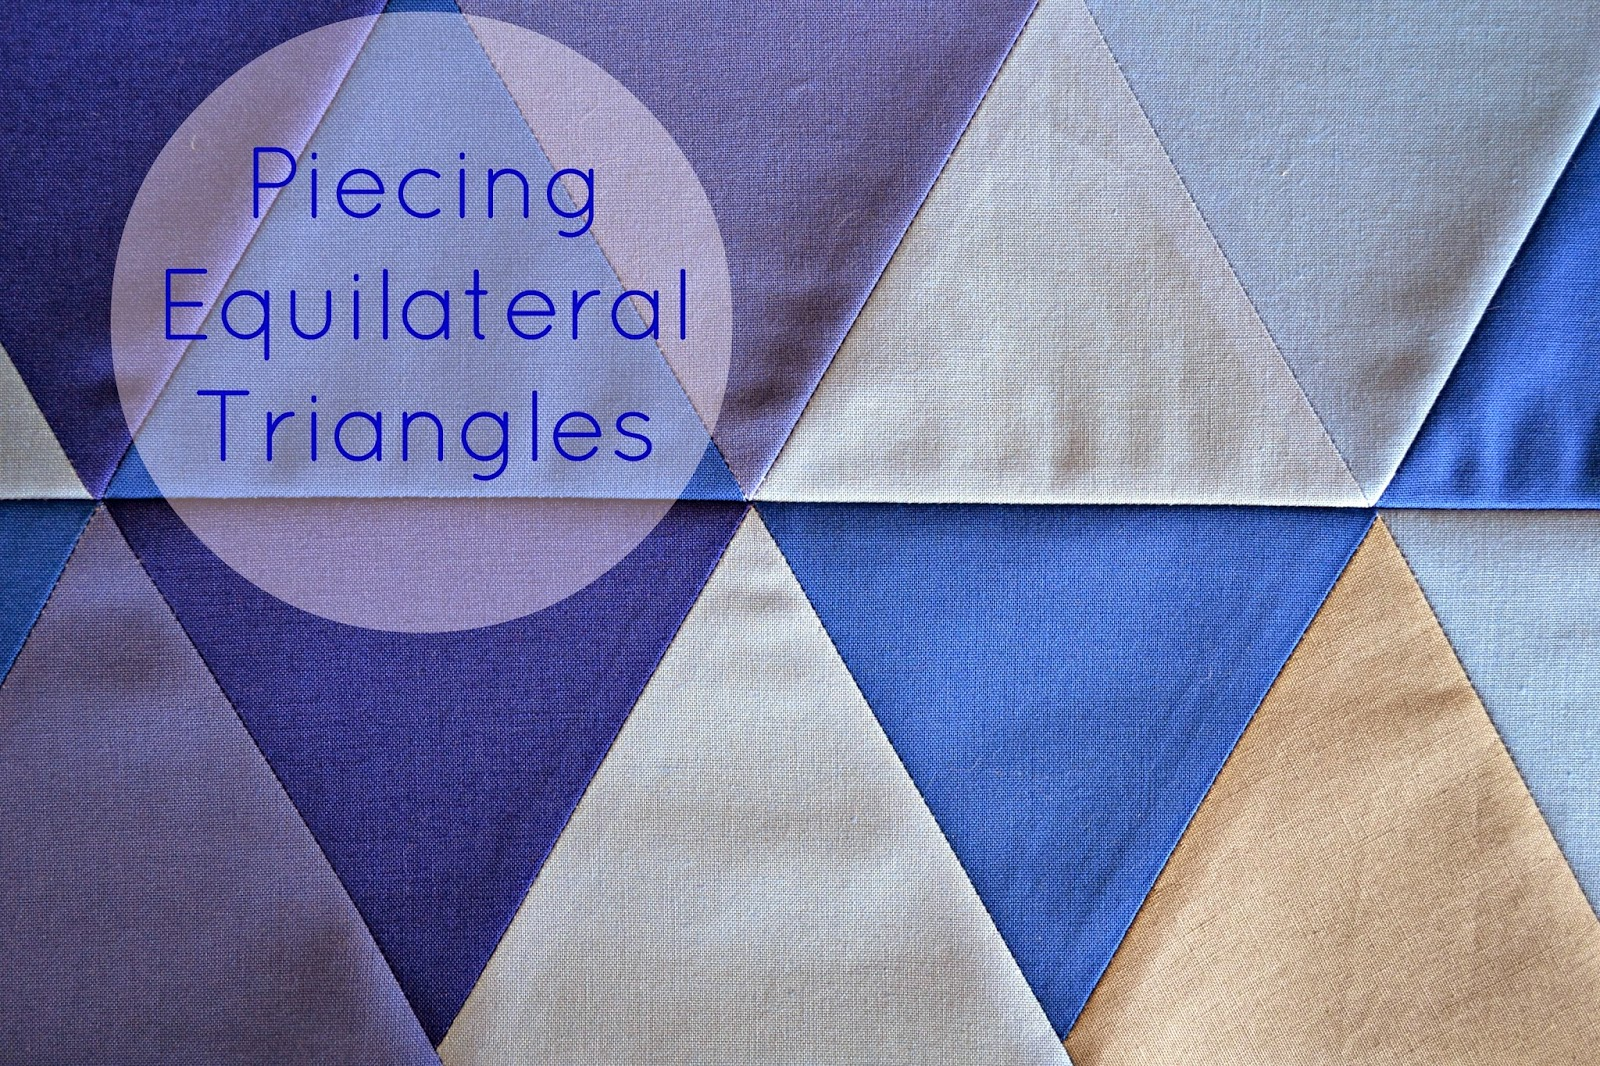 Piecing Equilateral Triangles tutorial